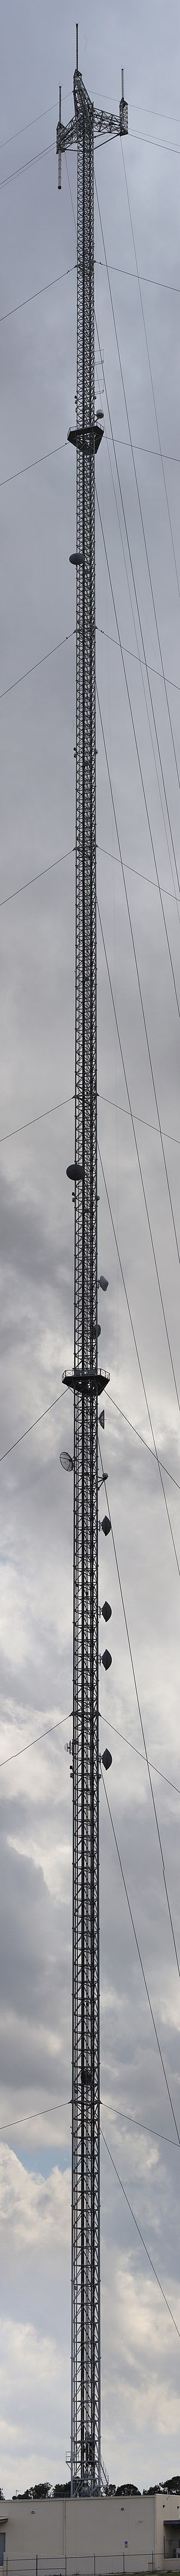 Guyed mast - A guyed FM and TV radio mast in Christmas, Fl. It is 1695 feet or 516 meters tall.